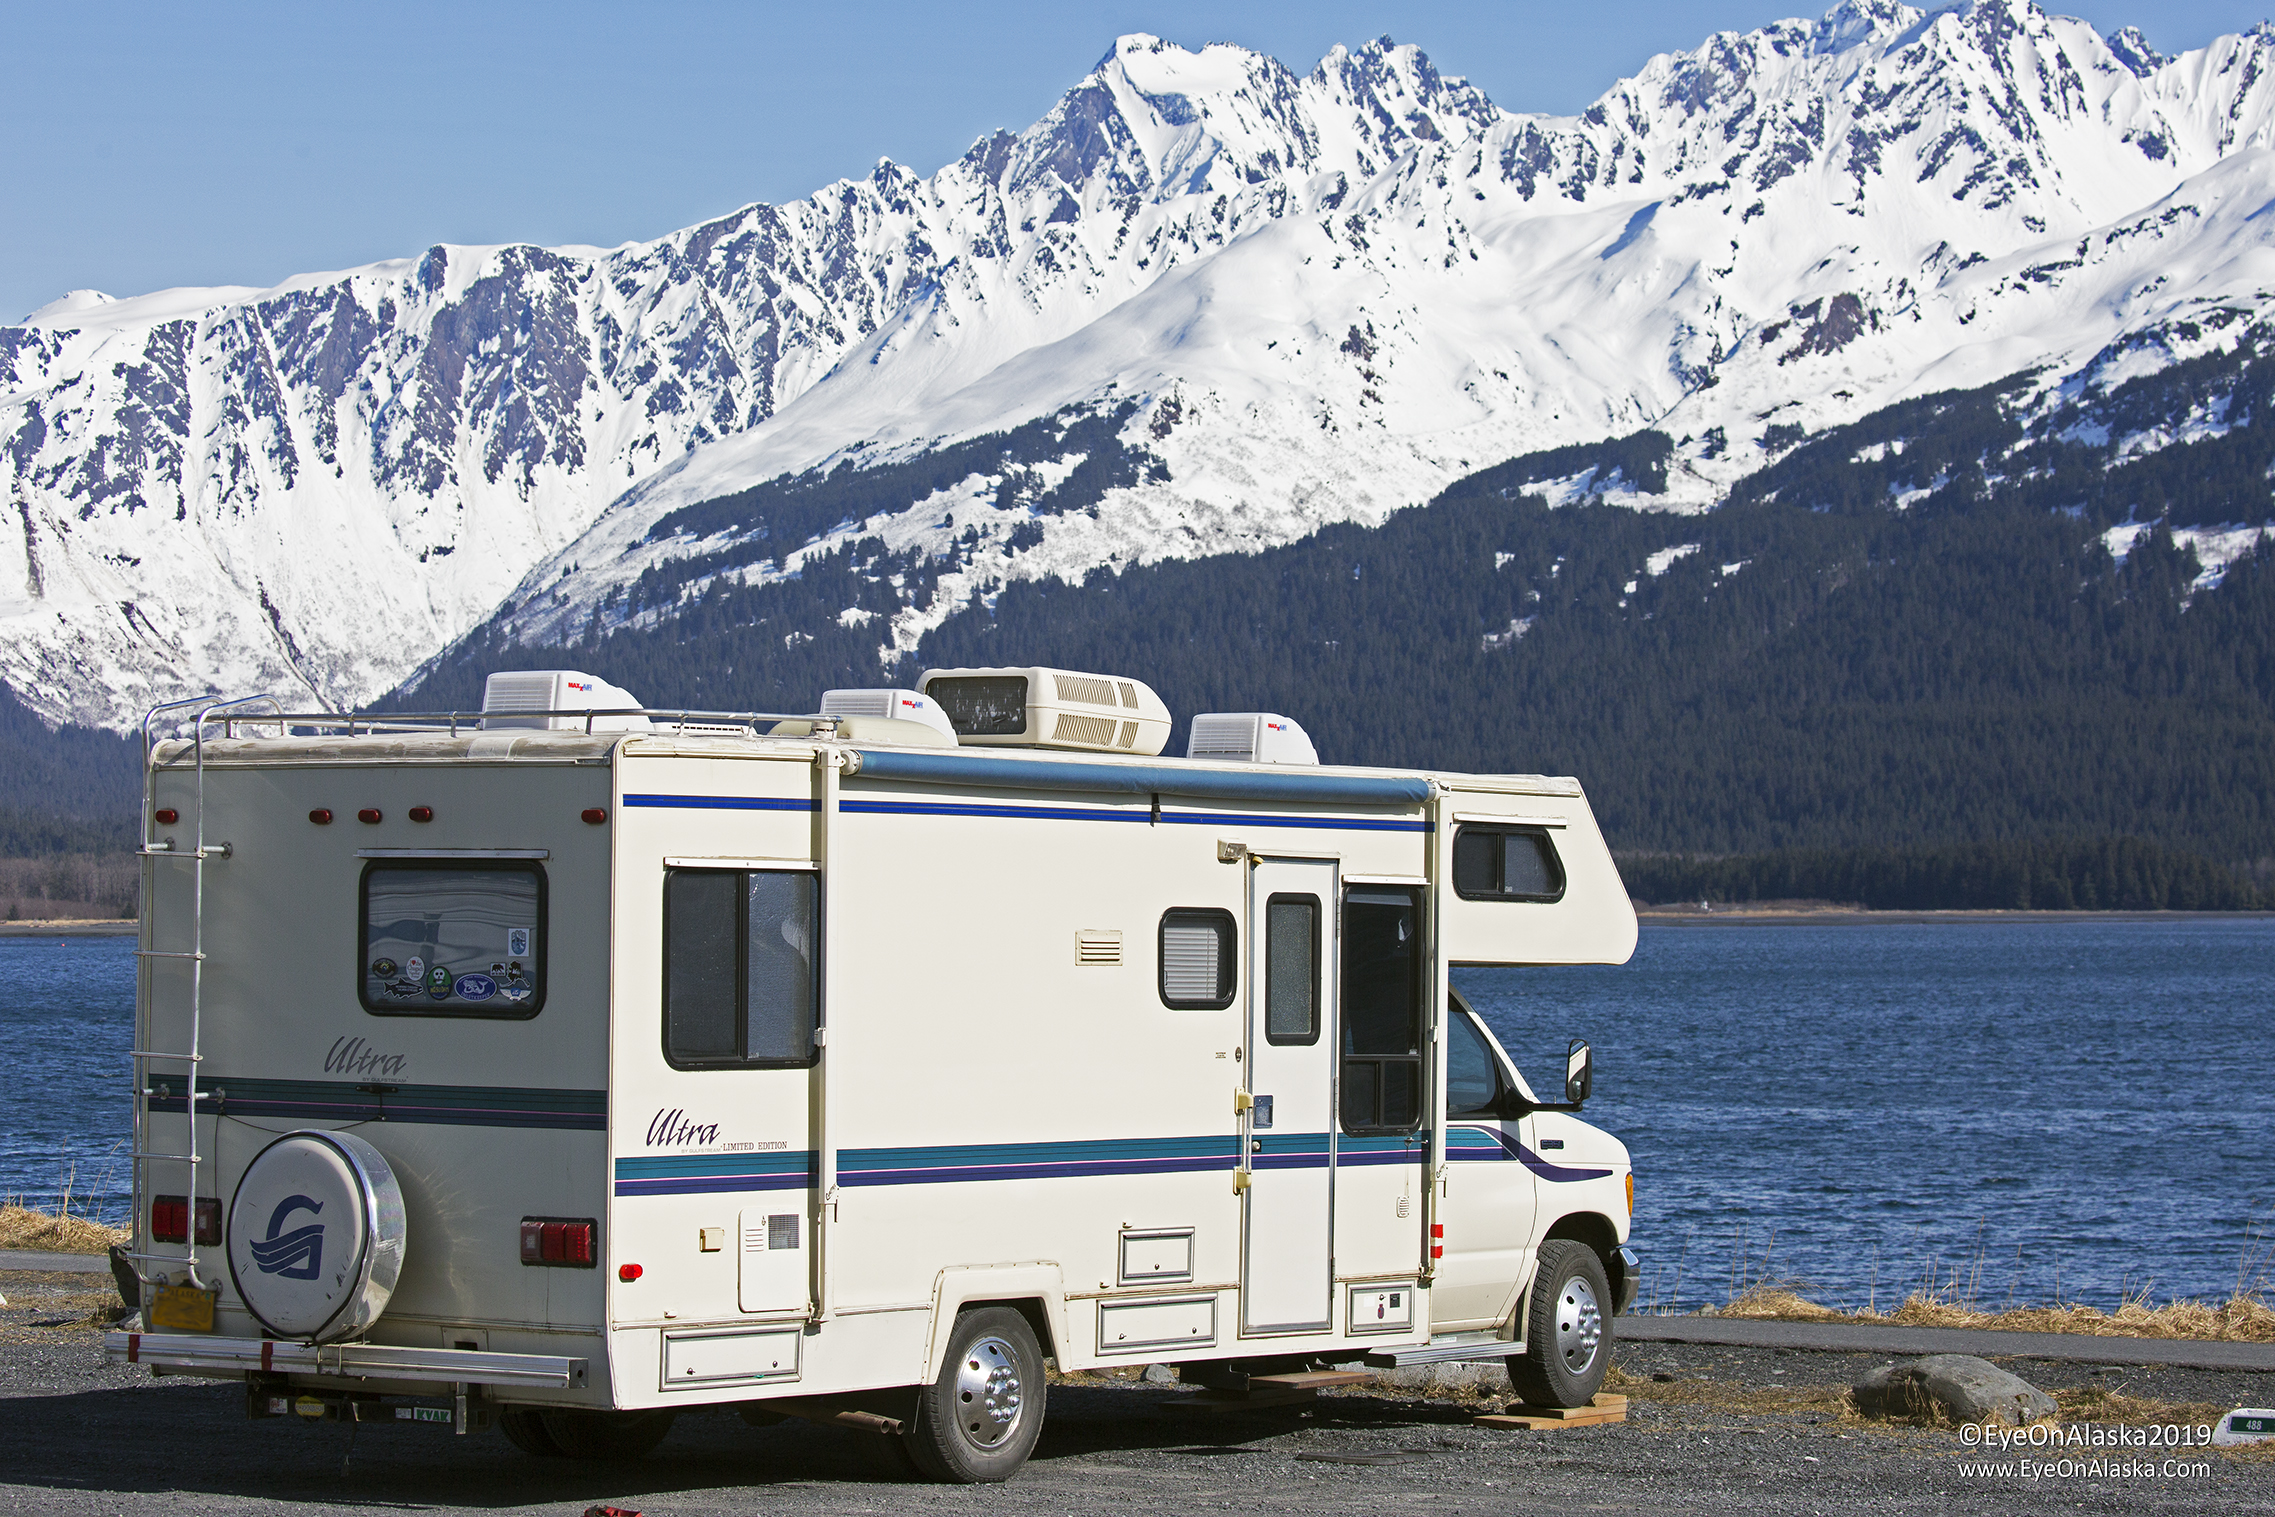 We love camping in Seward before and after the tourist season.  During the summer, this is wall to wall campers parked right next to each other, which we avoid like the plague.